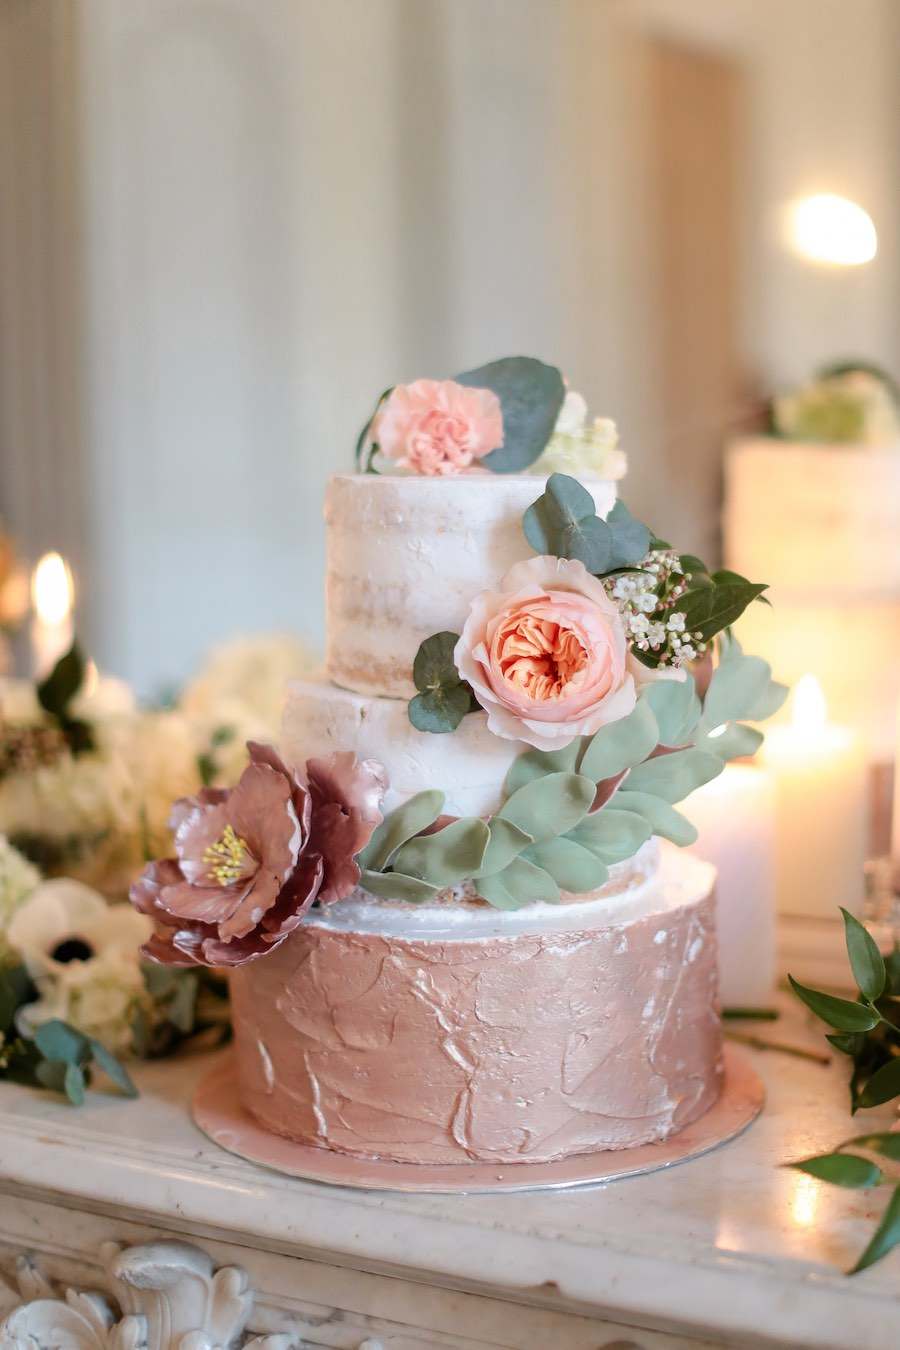 Mariage-rose gold-wedding-cake